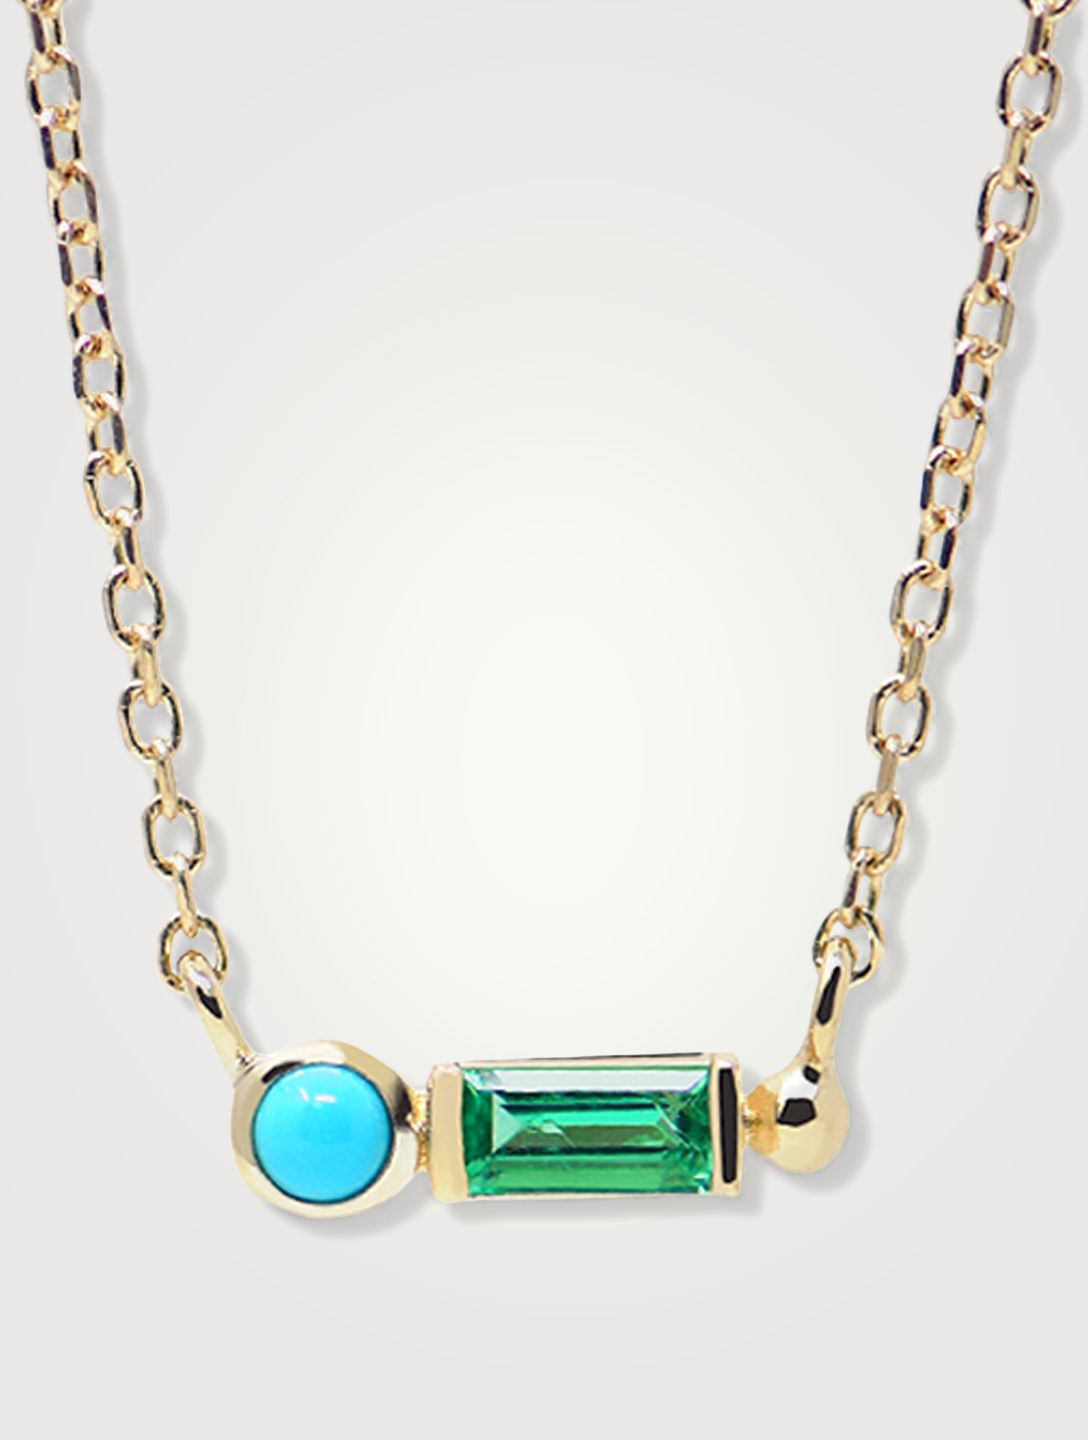 ANZIE Cléo 14K Gold Baguette Necklace With Emerald In Turquoise Women's Metallic